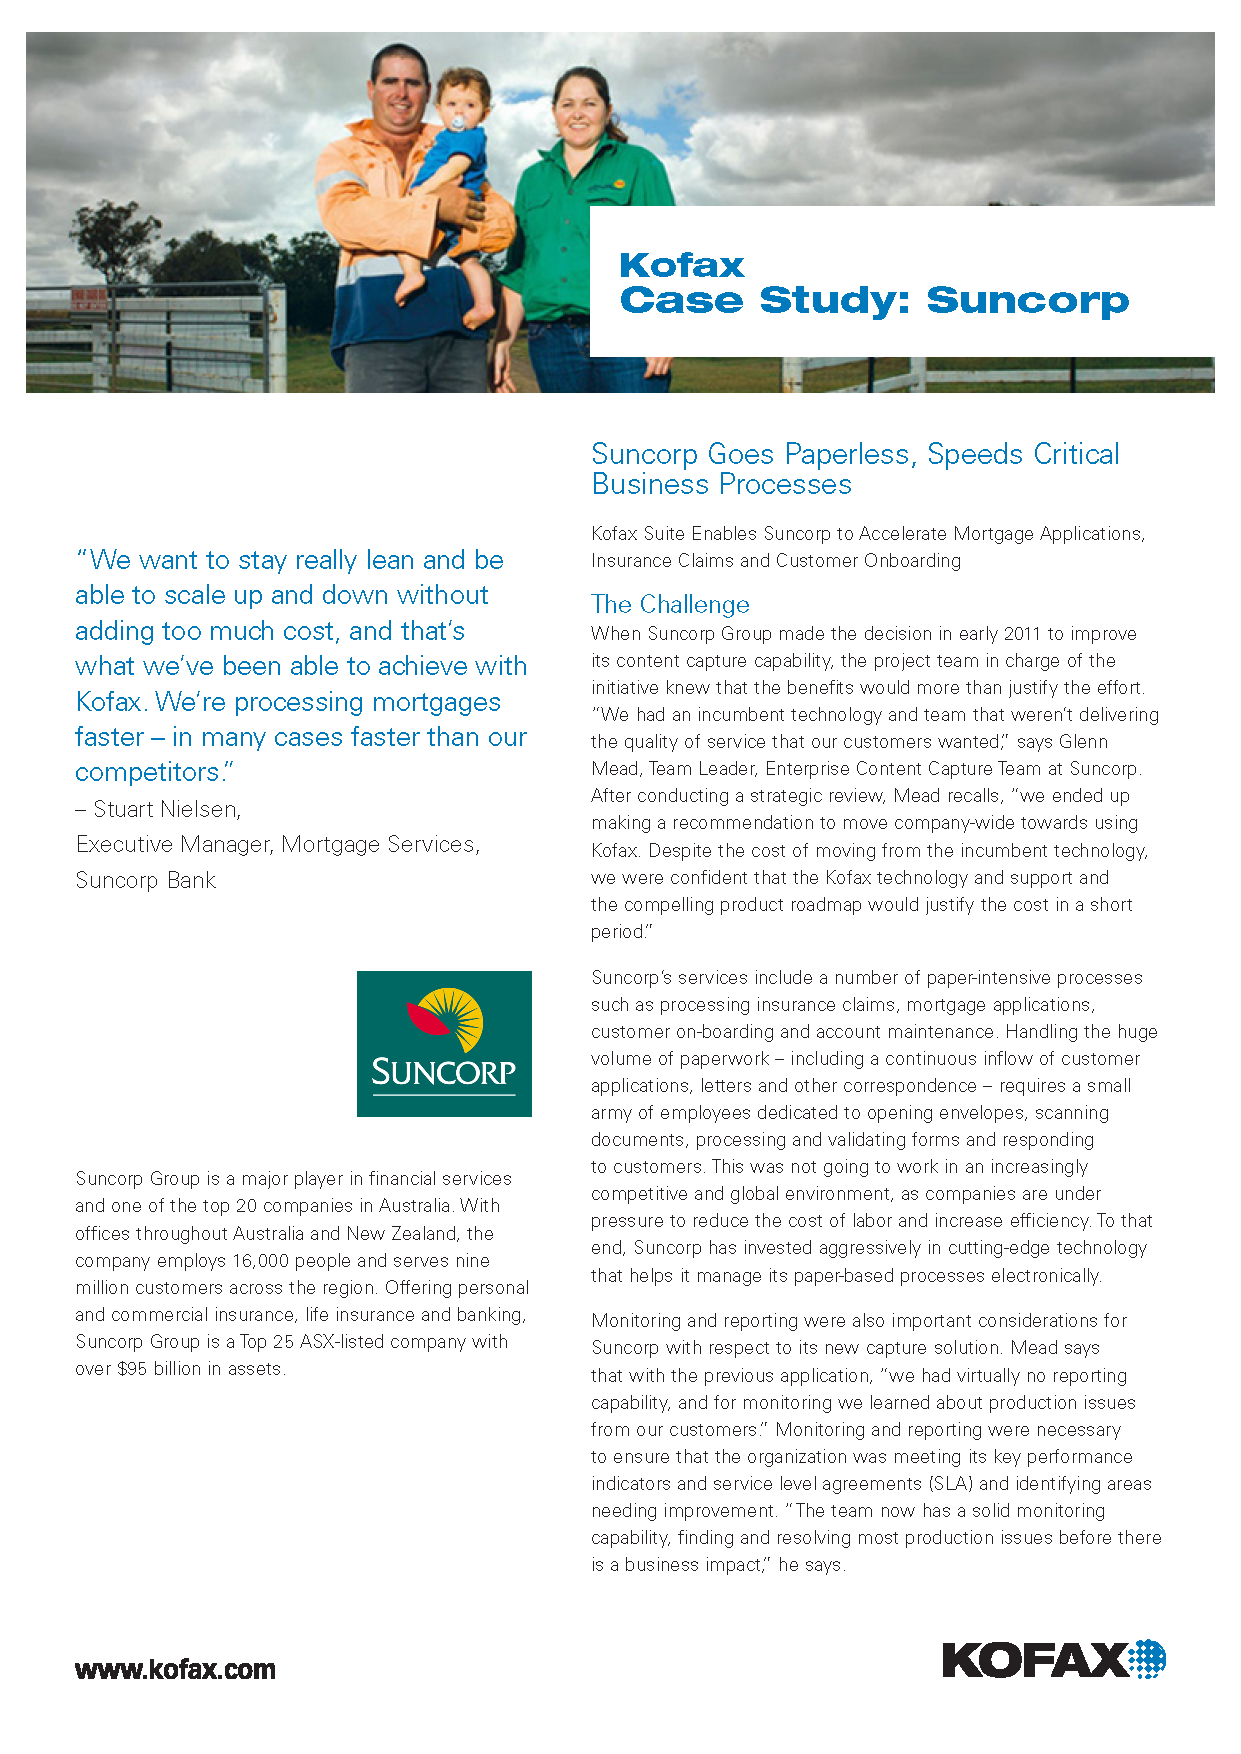 kofax-case-study-suncorp-cover